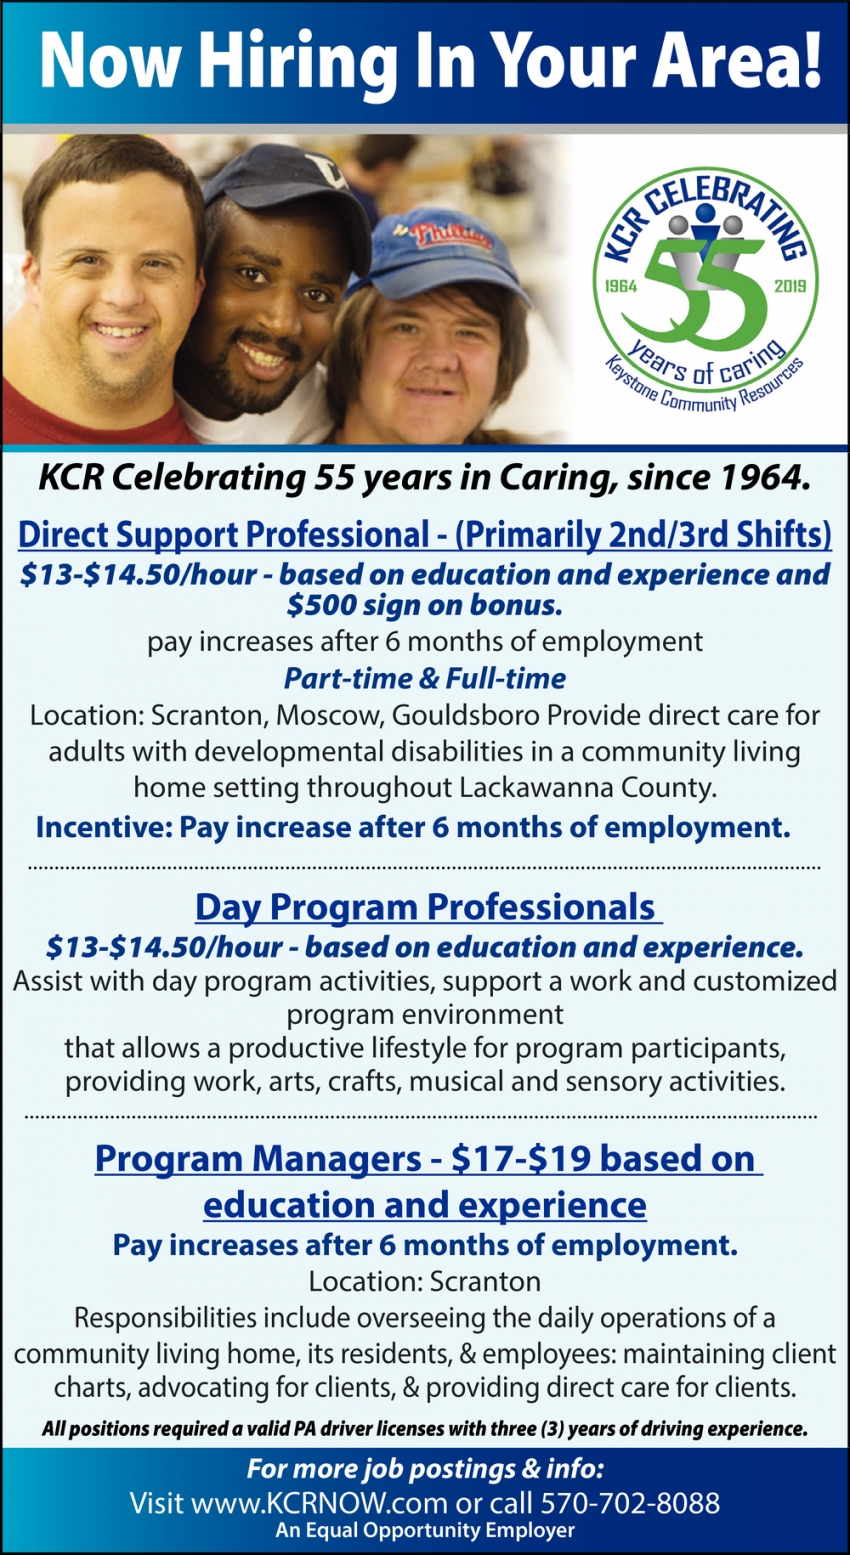 Direct Support Specialist, Day Program Professionals,  Program Managers